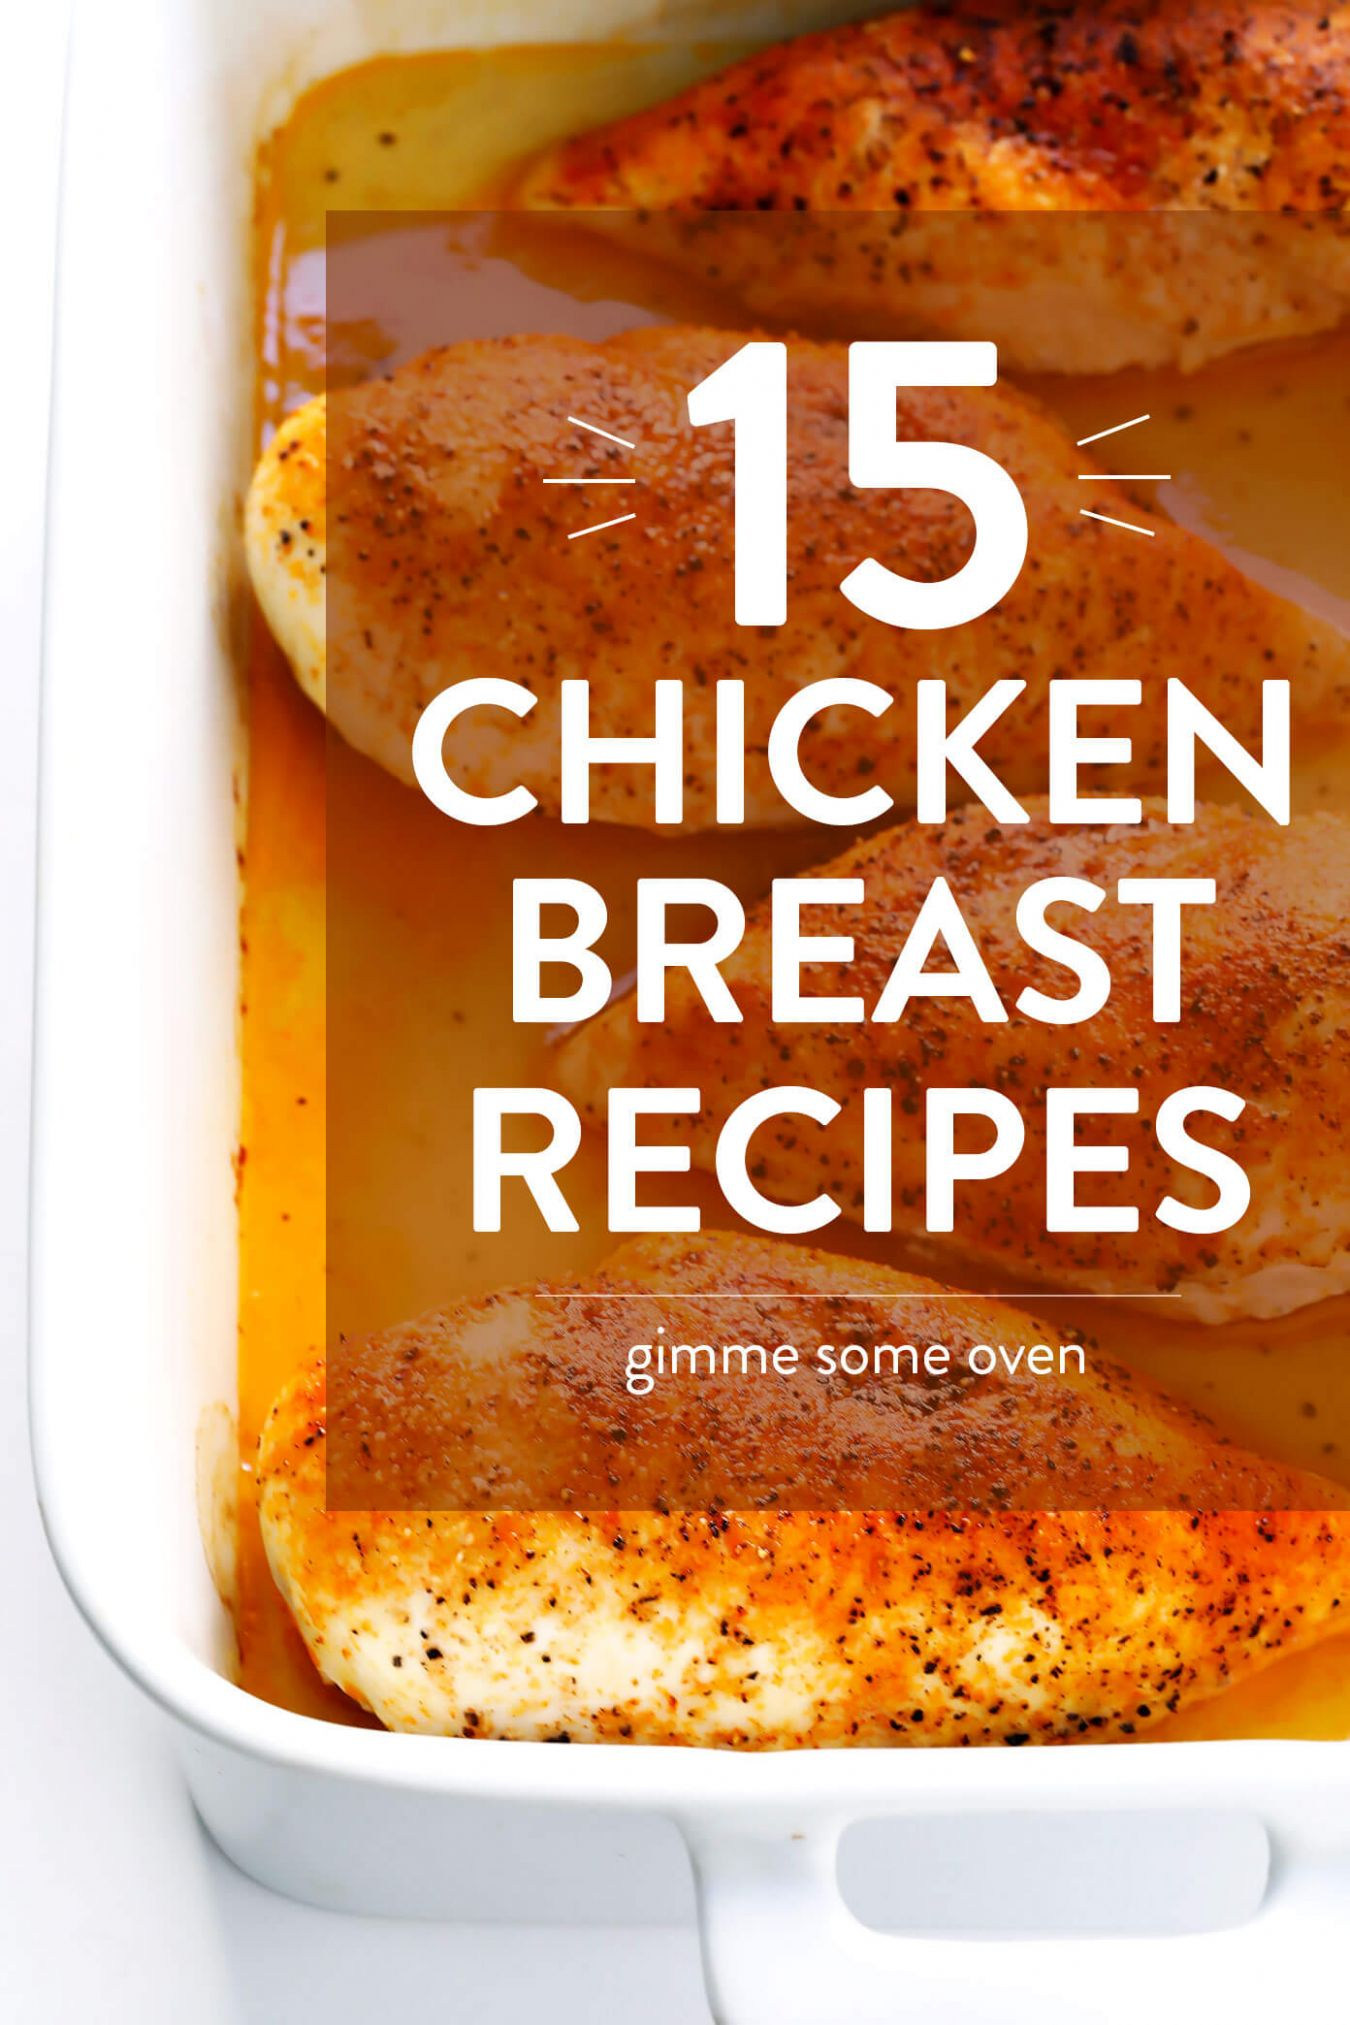 8 Favorite Chicken Breast Recipes | Gimme Some Oven - Simple Recipes To Make With Chicken Breast